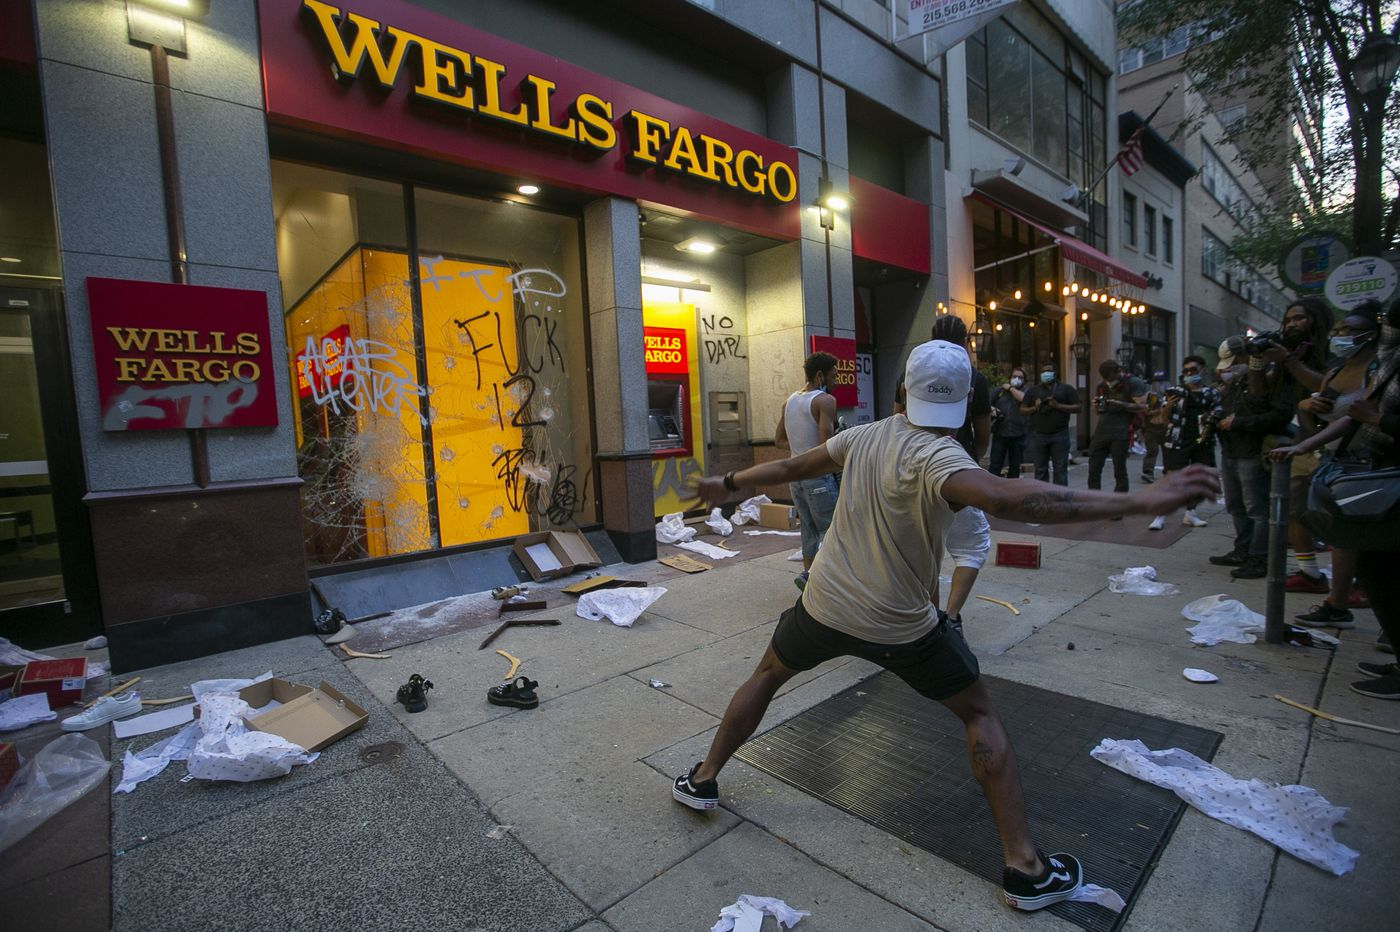 Peaceful Philly protests over George Floyd's death give way to violence, looting, arrests